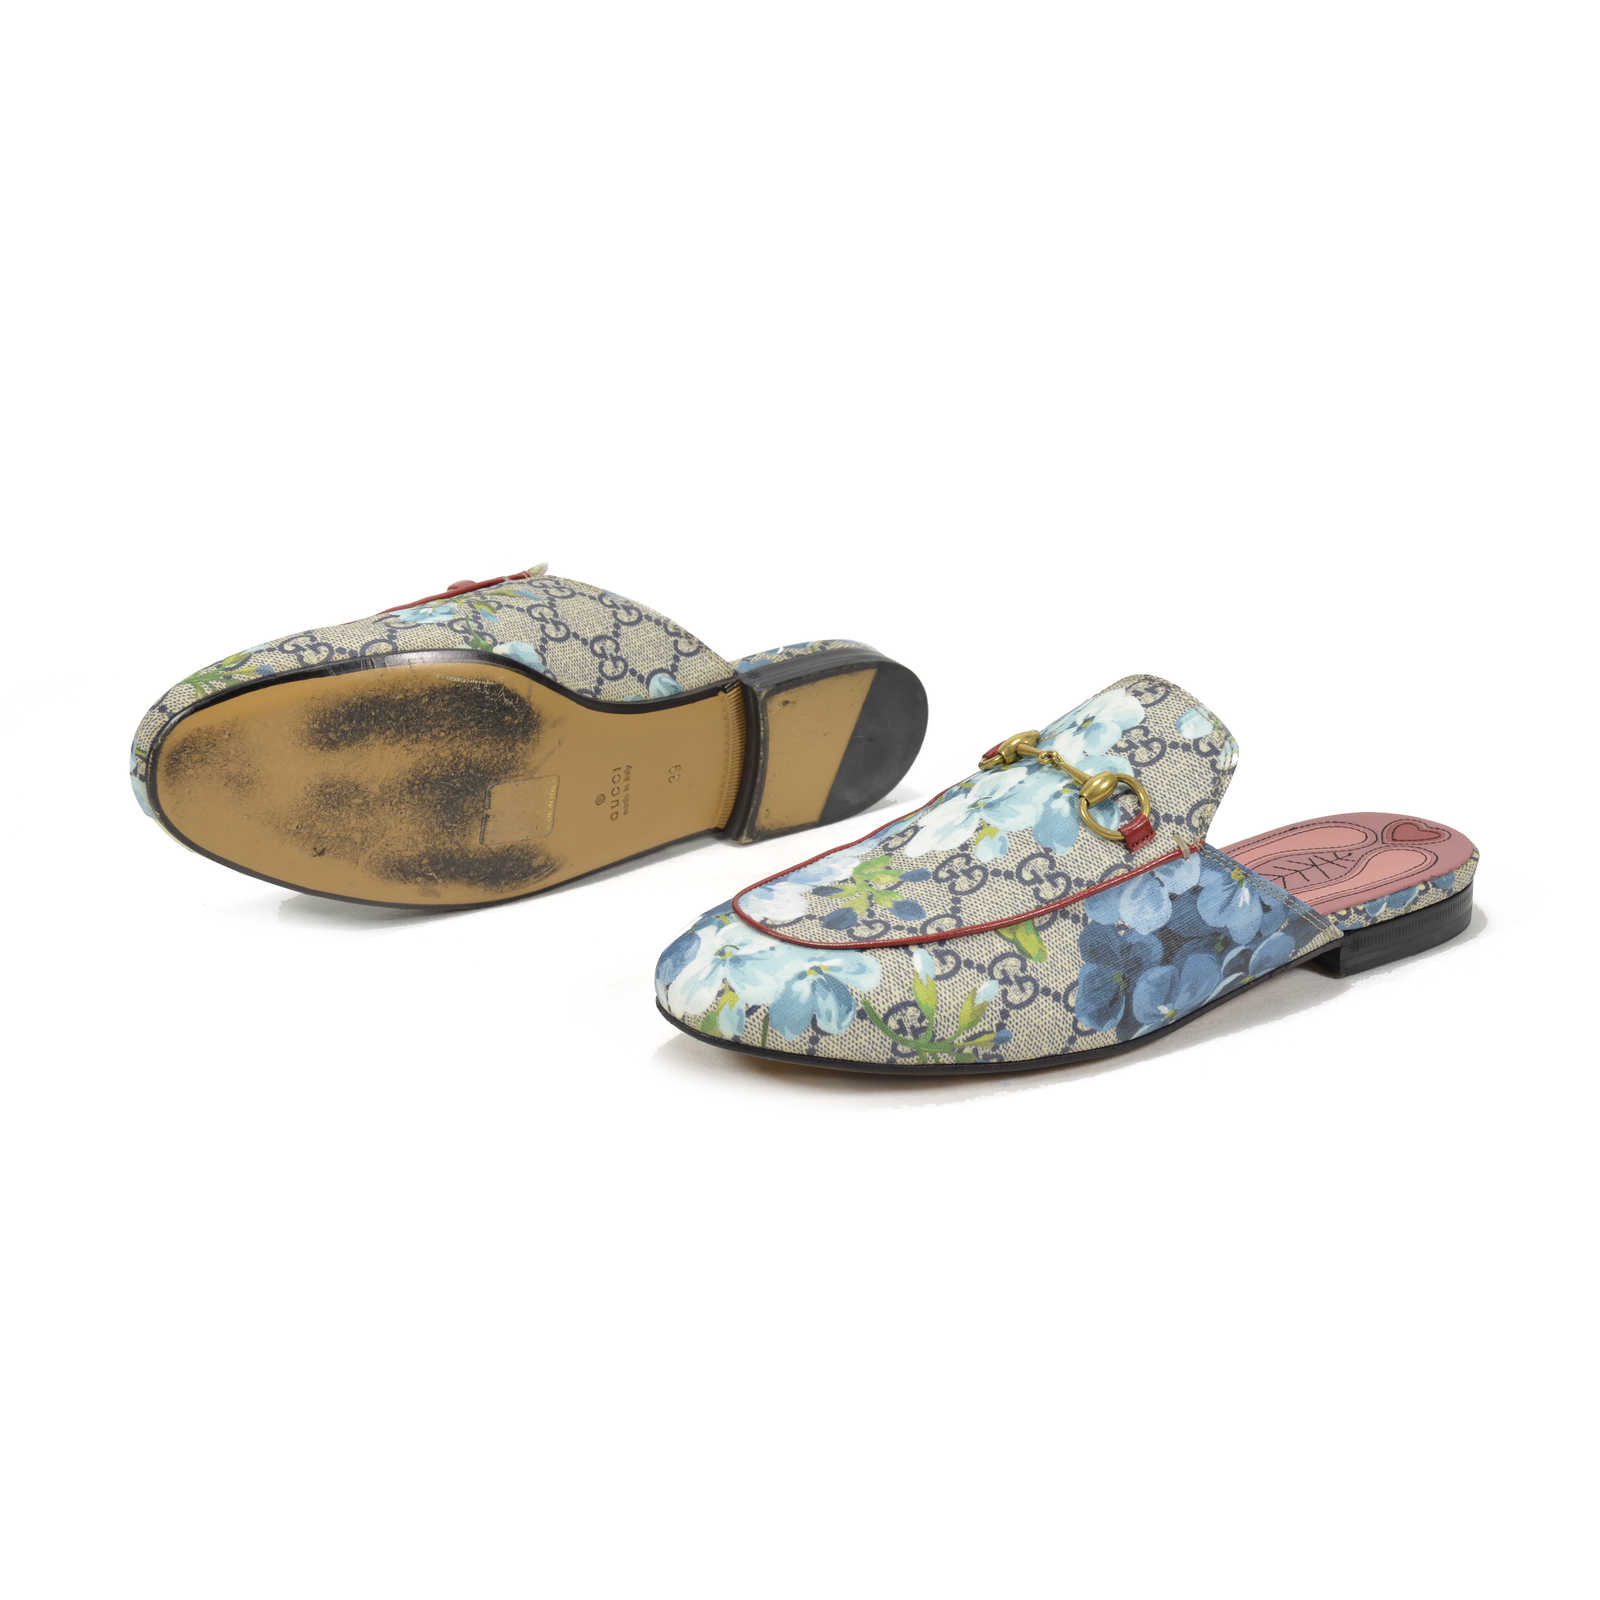 8365099ce ... Authentic Second Hand Gucci Princetown GG Blooms Slipper  (PSS-051-00161) ...